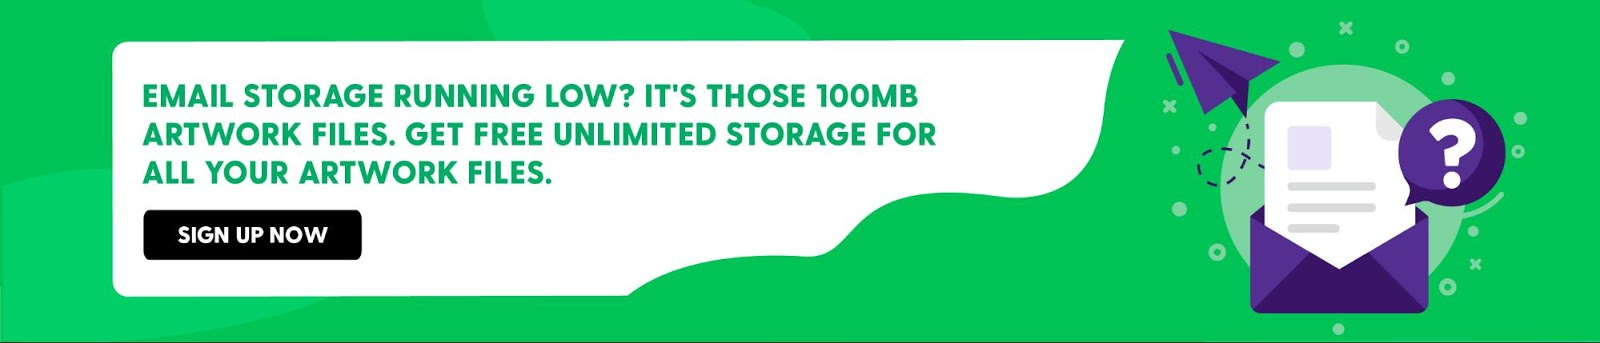 Email Storage Running Low? It's those 100MB Artwork Files.Get FREE Unlimited Storage for all your Artwork files.https://artwork.bizongo.com/sign-up